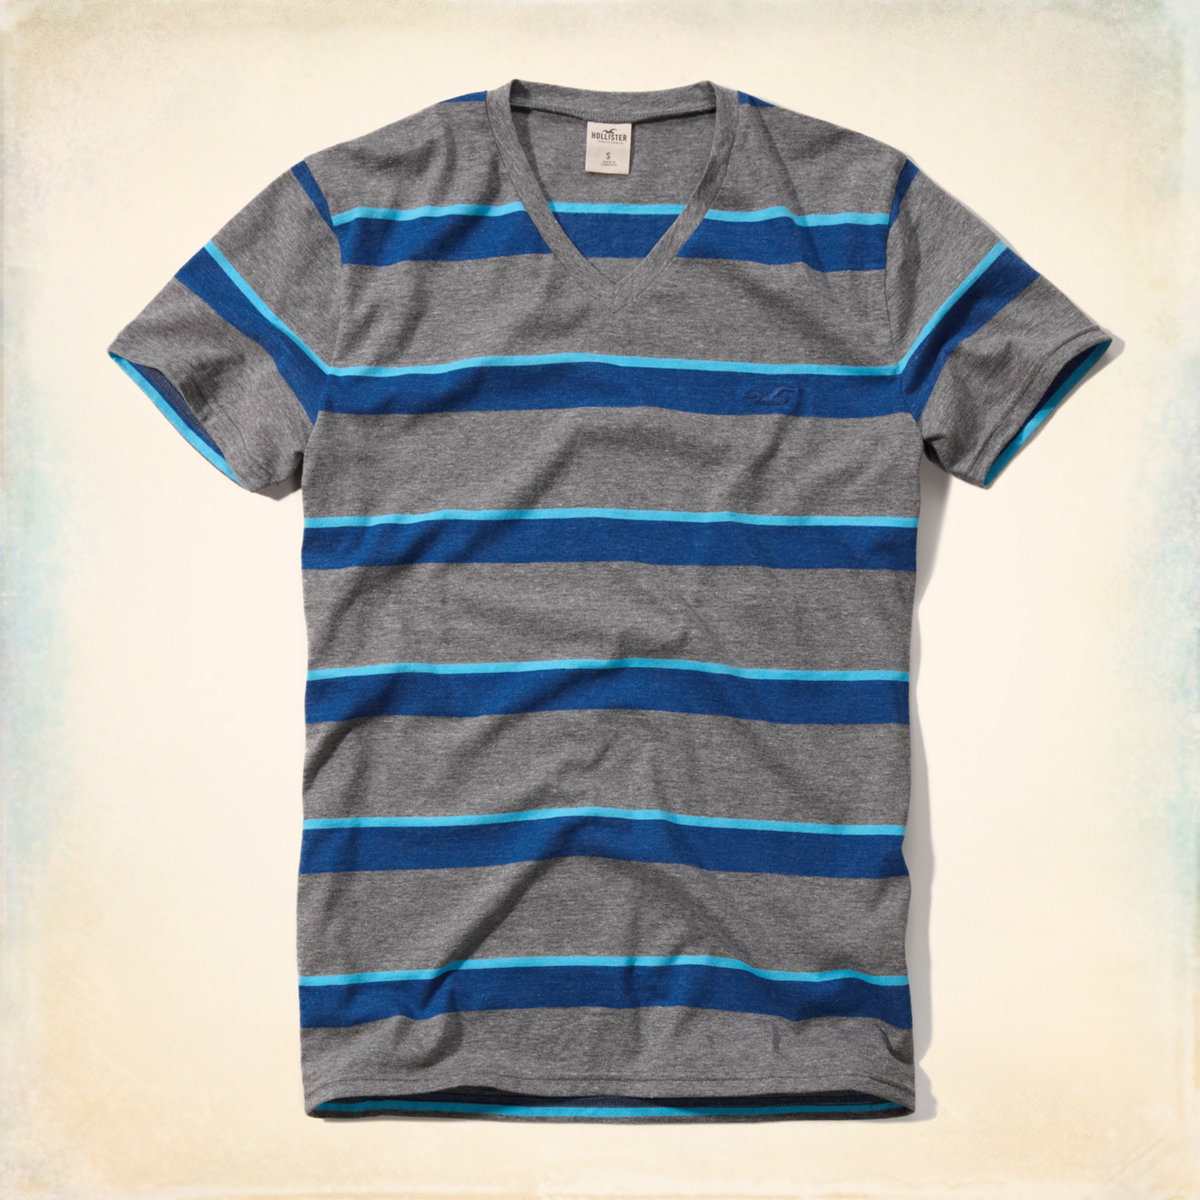 hype | Rakuten Global Market: Hollister T shirt mens genuine ...